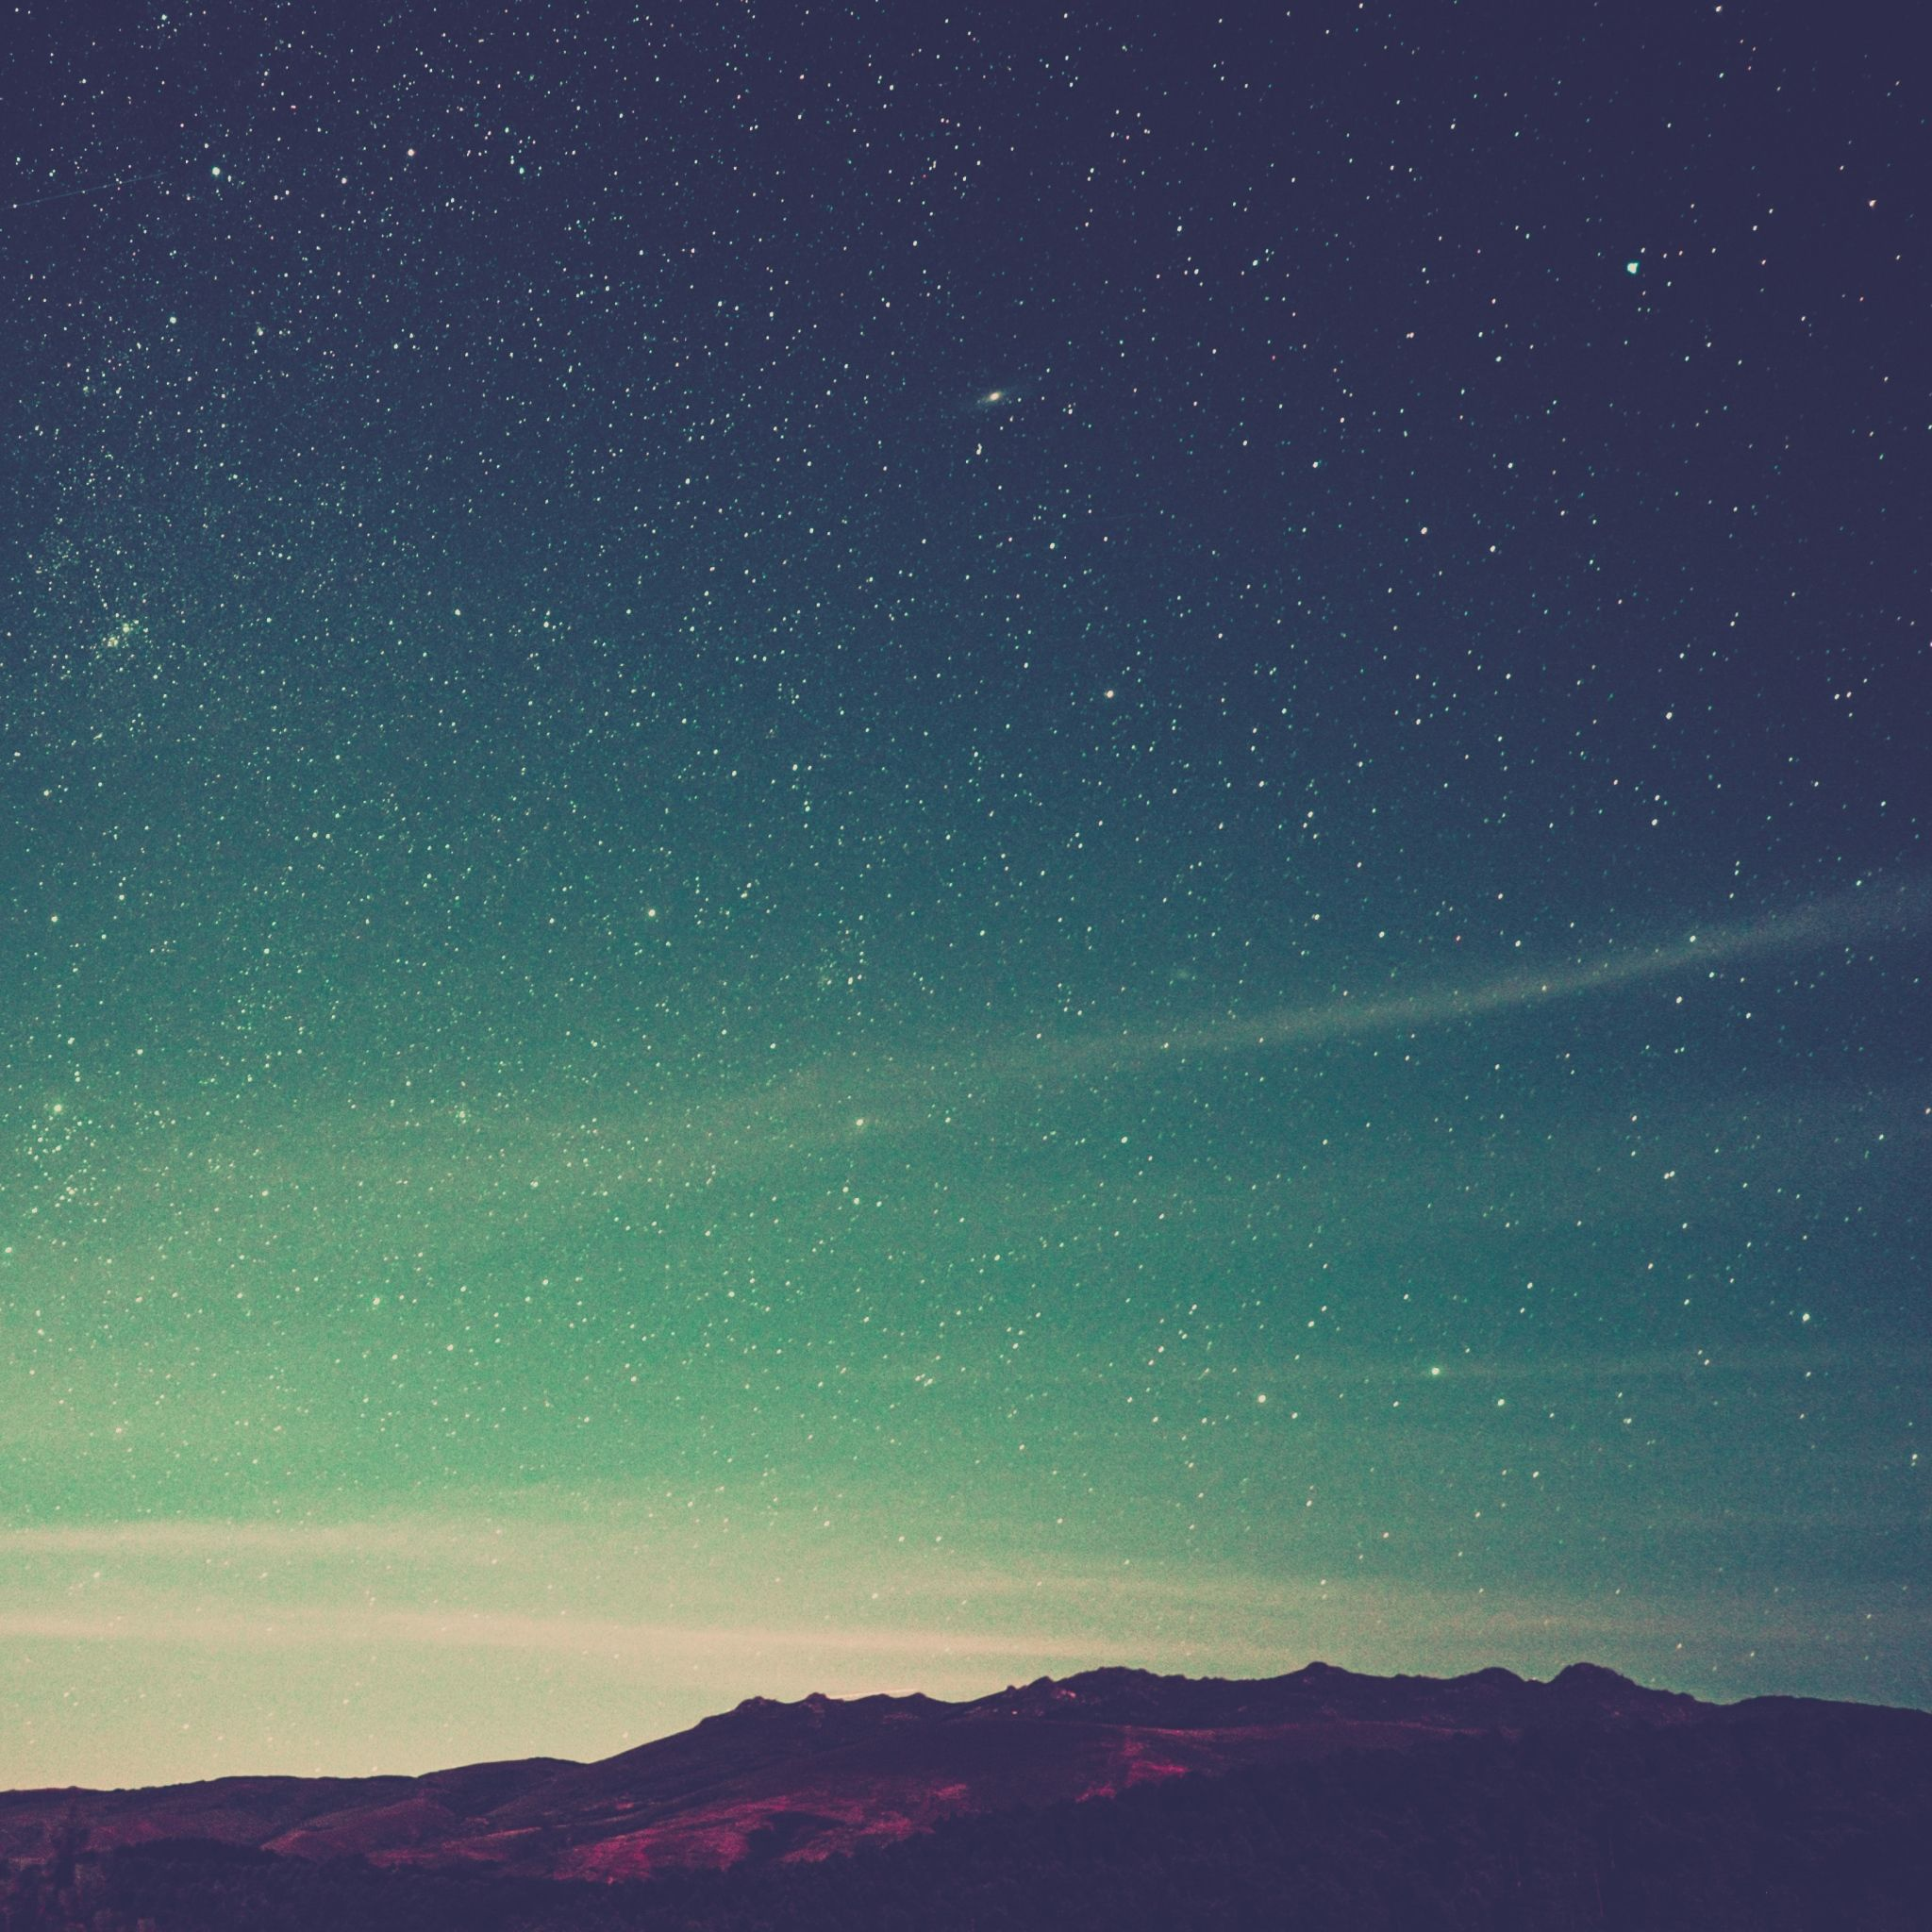 2048x2048 wallpaper starry sky, radiance, mountains, sky | mobile